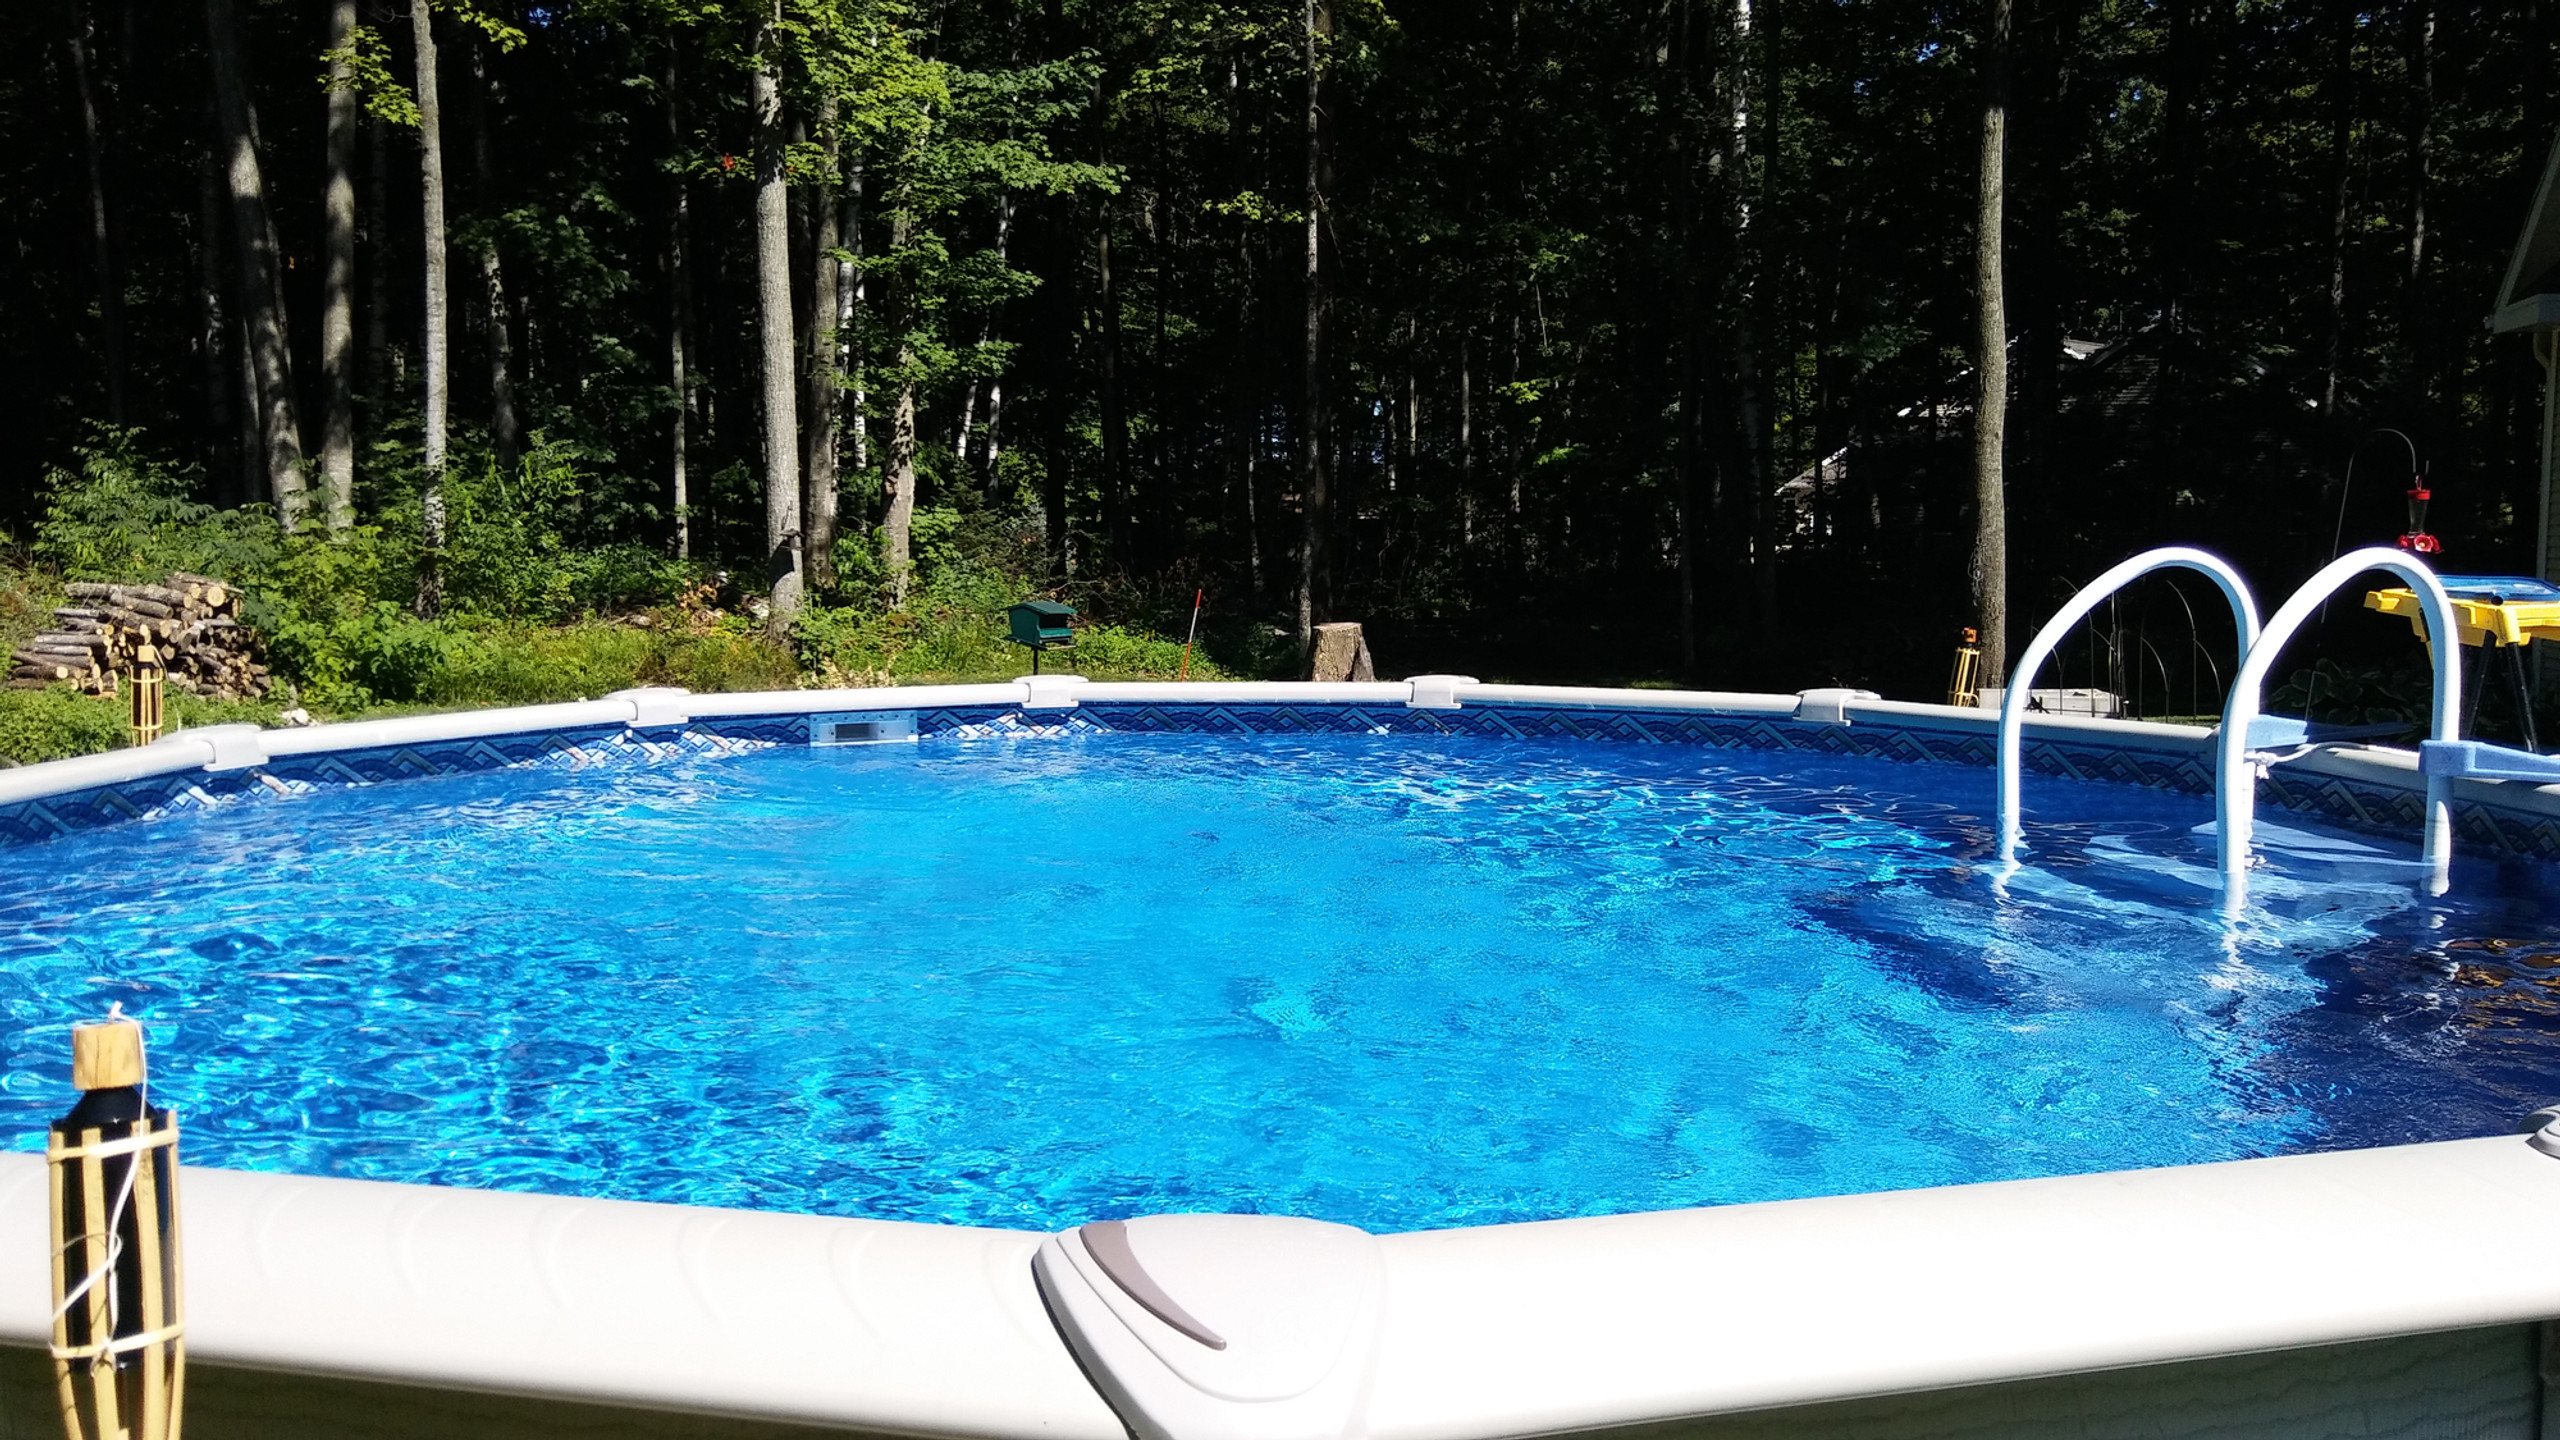 This 18' Round Evolution Pool was built by Pool Pros in Sturgeon Bay, WI in 2016.